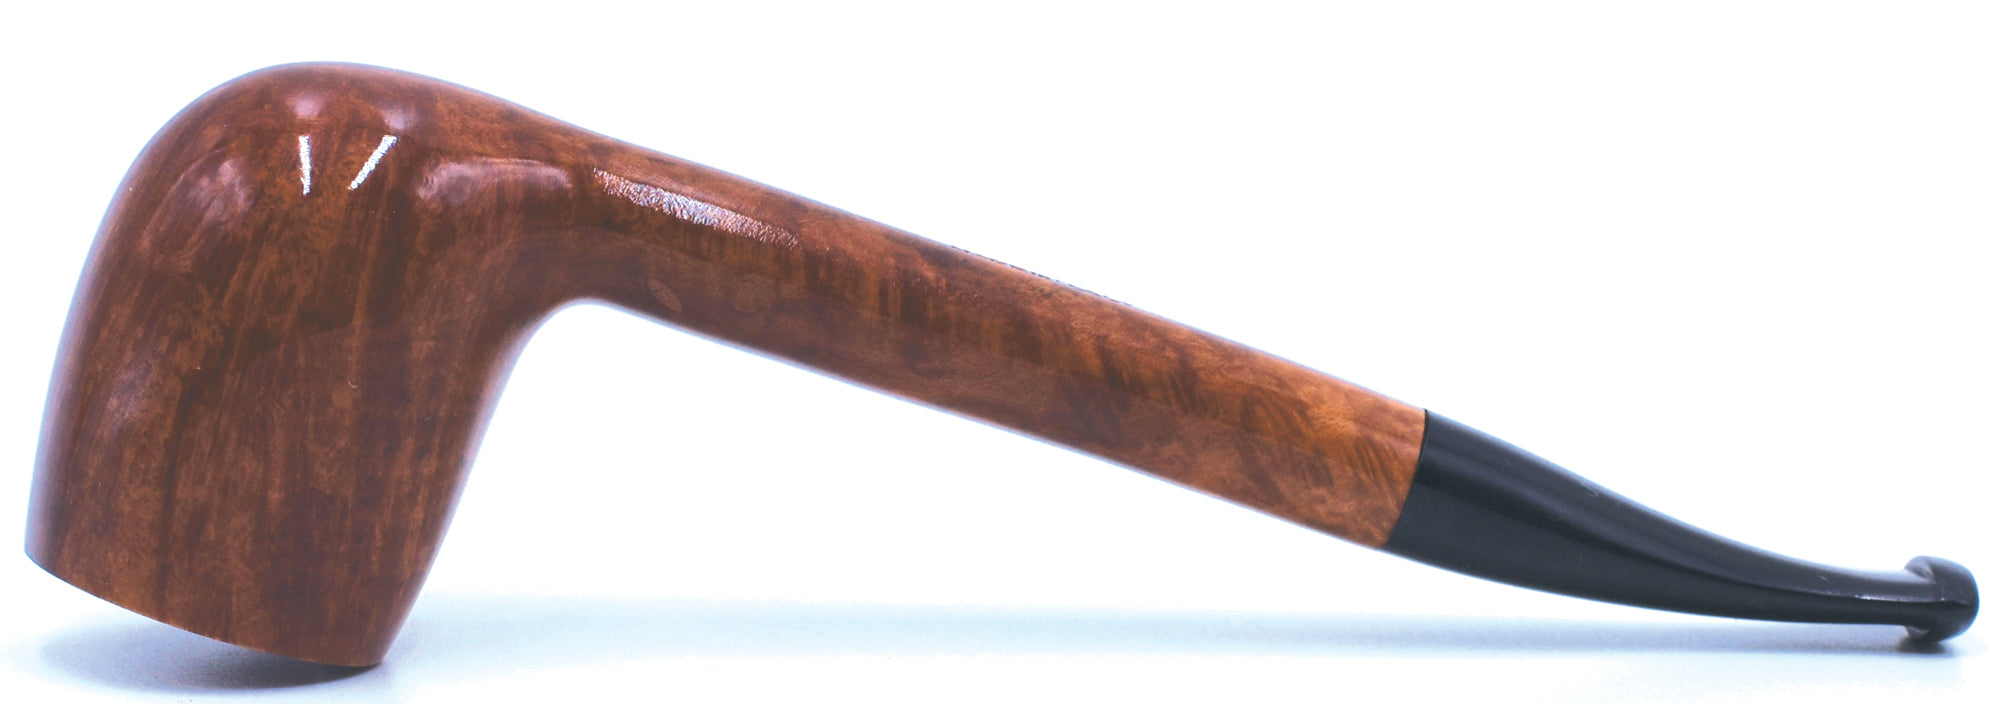 LEGENDEX® CANADIAN* Non-Filtered Long Stem Briar Smoking Pipe Made In Italy 01-08-810